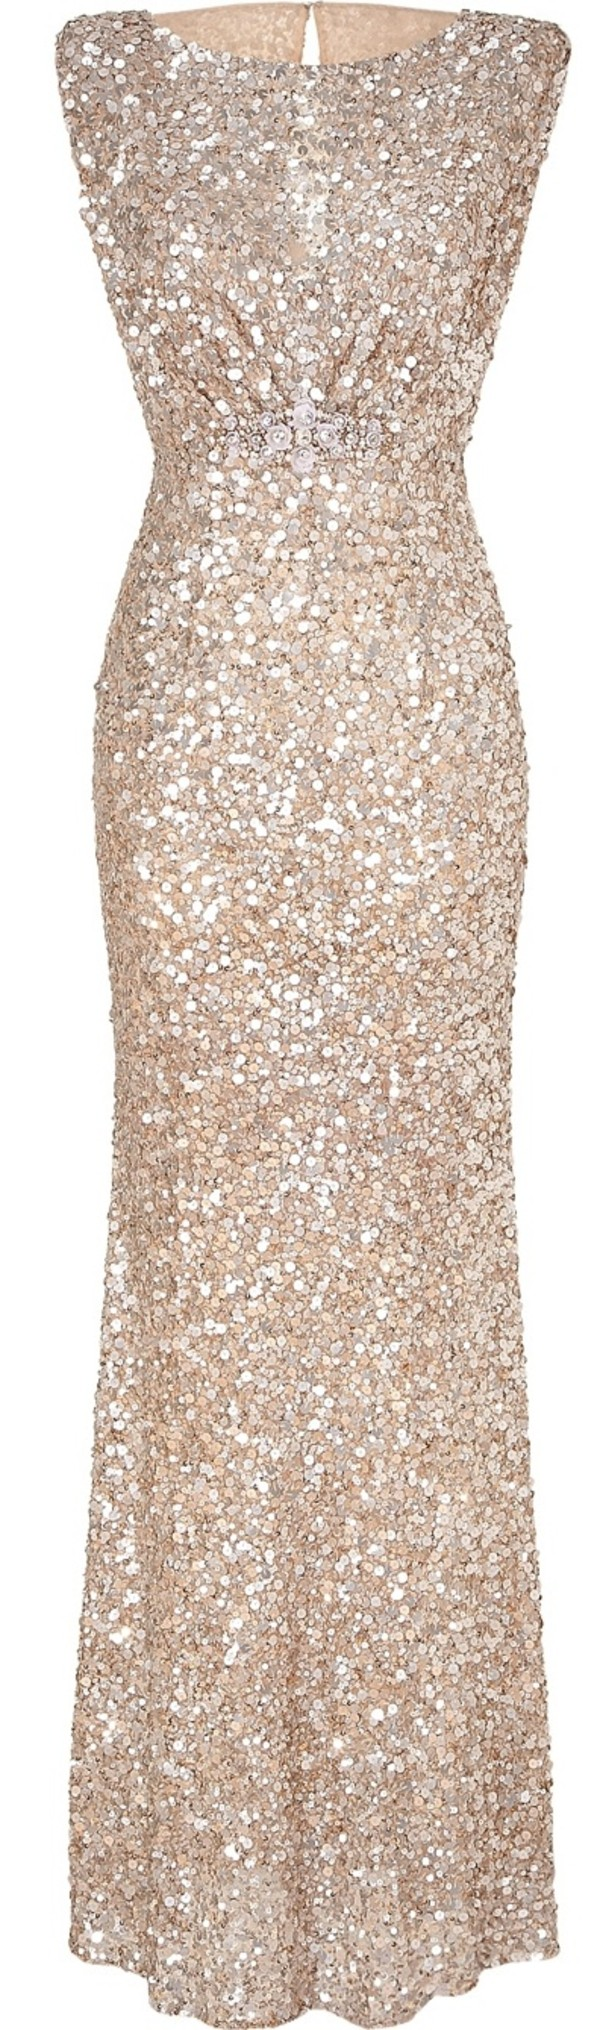 dress long dress prom dress long sparkle embellished pattern bodycon beige champagne prom rhinestones rhinestones sequins sequins sparkle sparkle beige prom dress beige dress champagne dress champagne prom dress rhinestone prom dress sequin dress sequin prom dress sparkly dress sparkle dress prom short sequin jewels